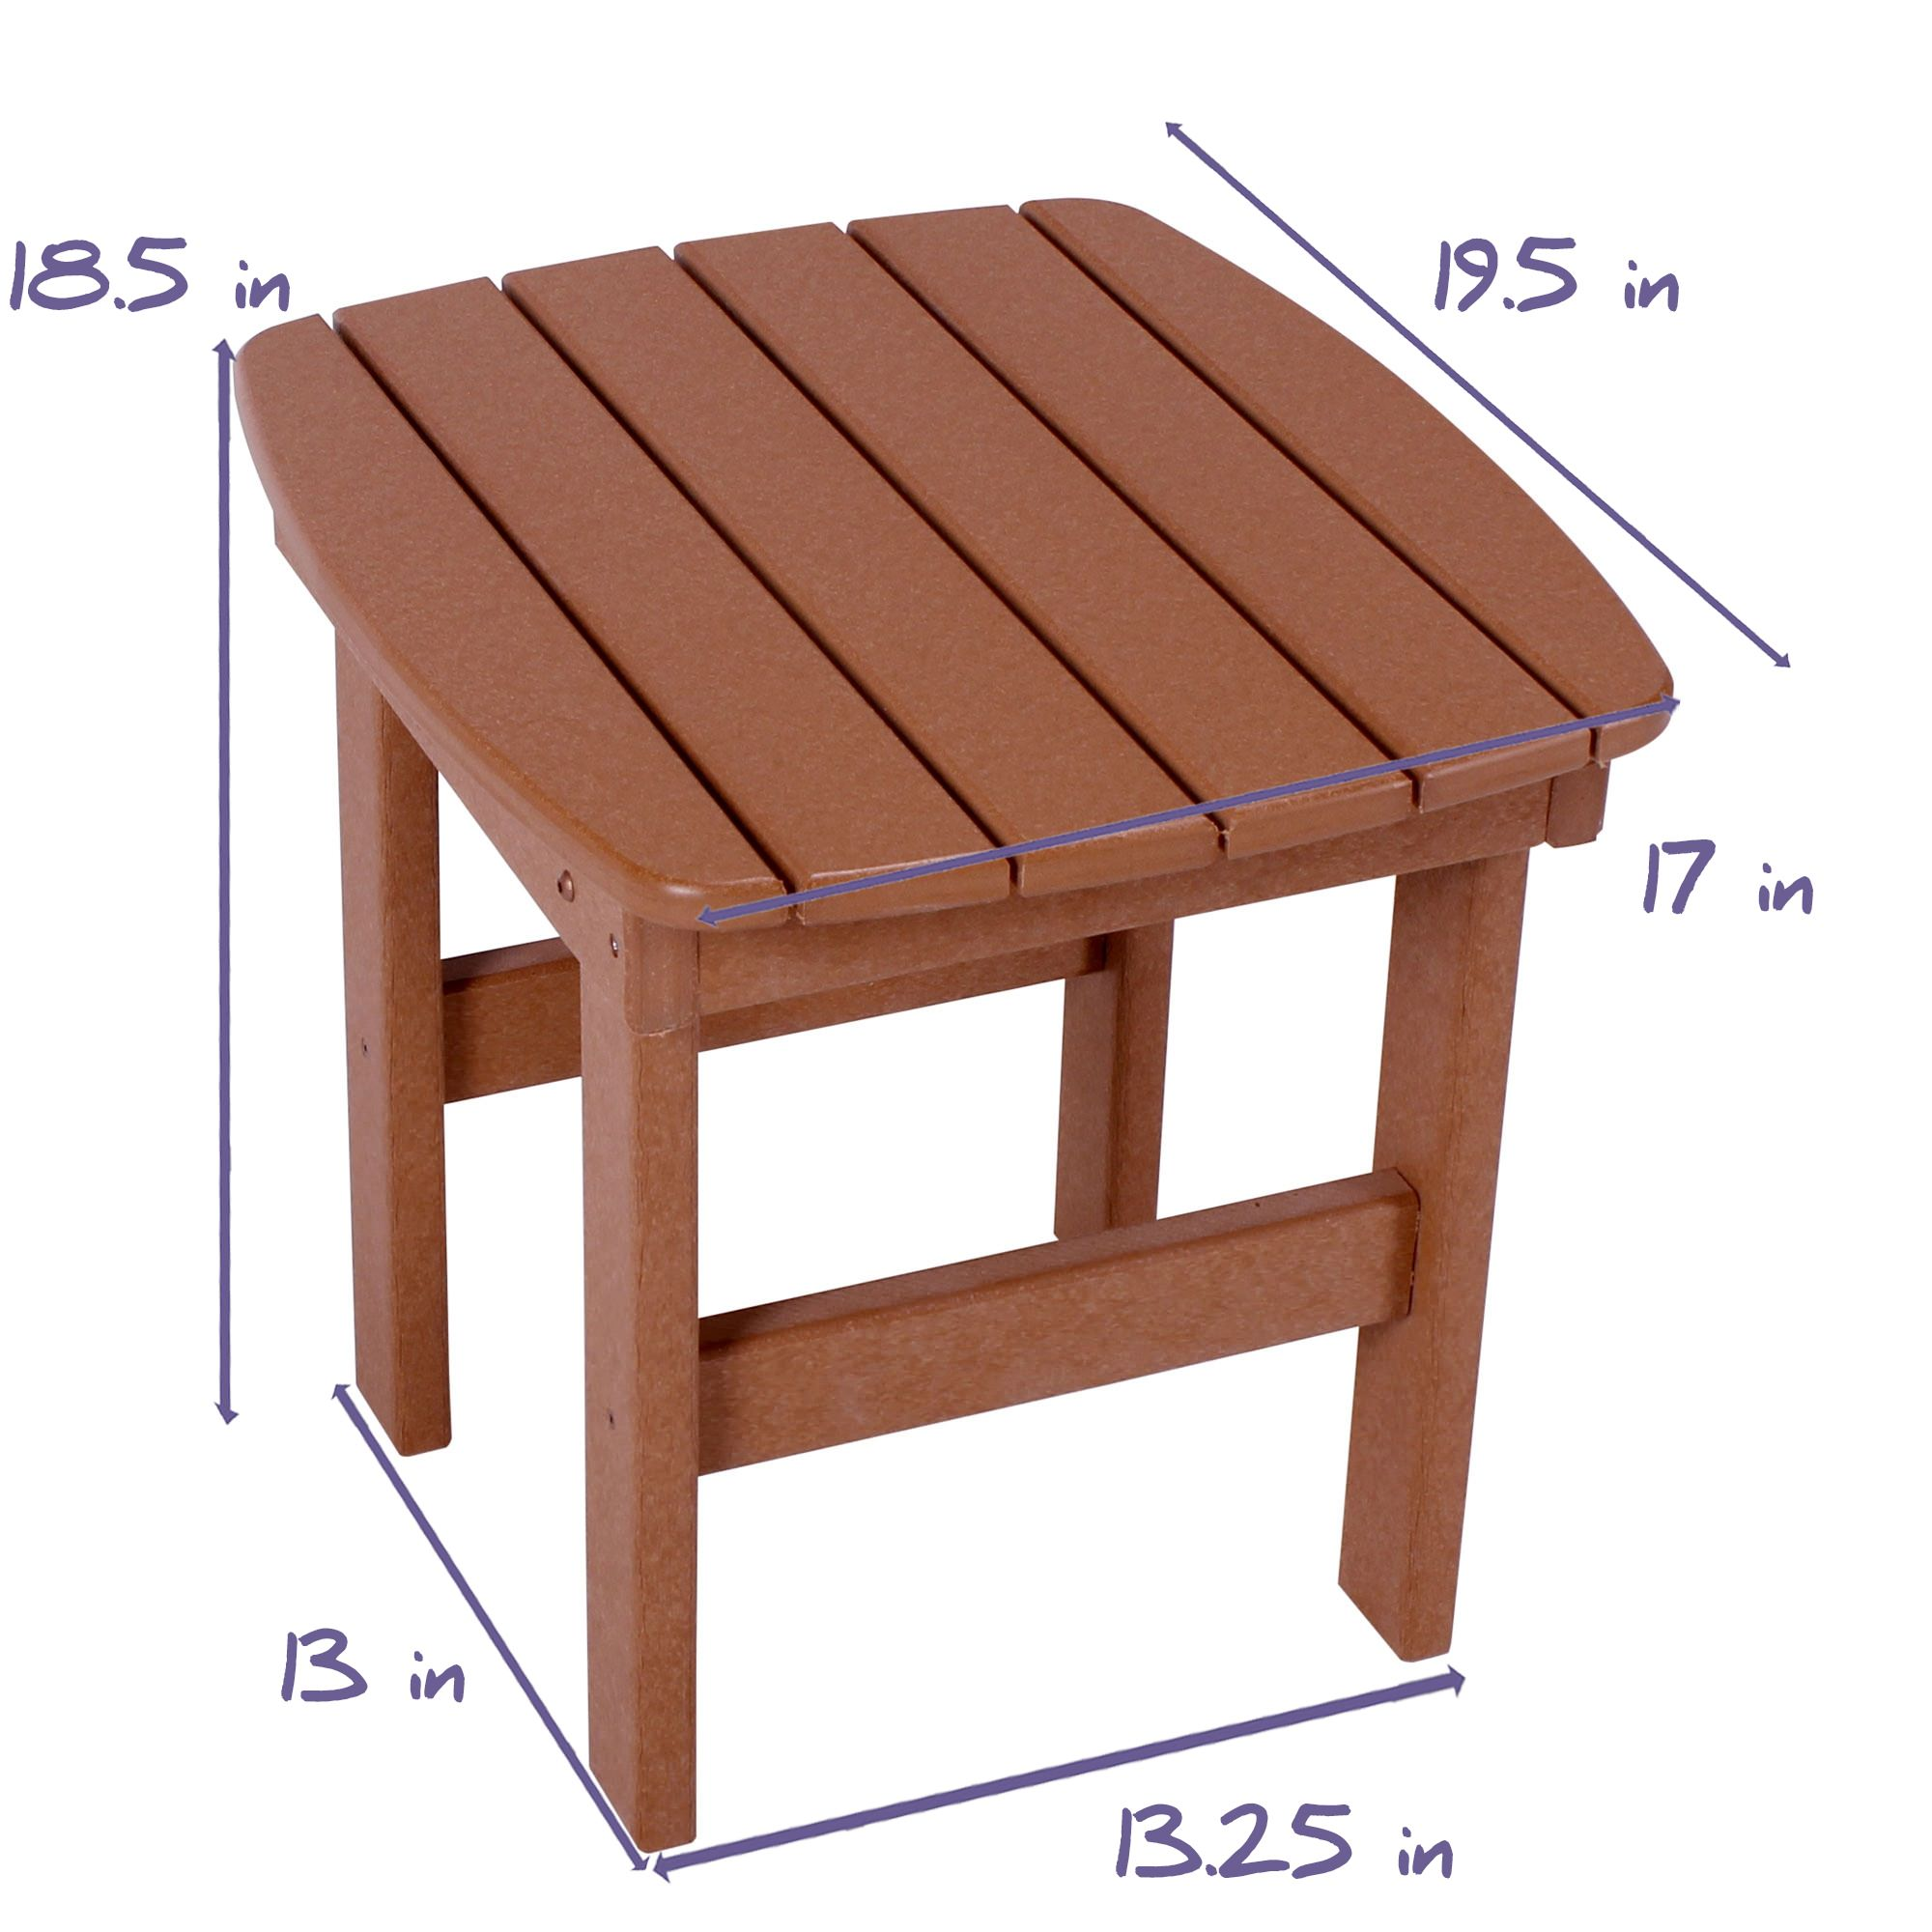 Shop durawood adirondack side tables on sale for Adirondack side table plans